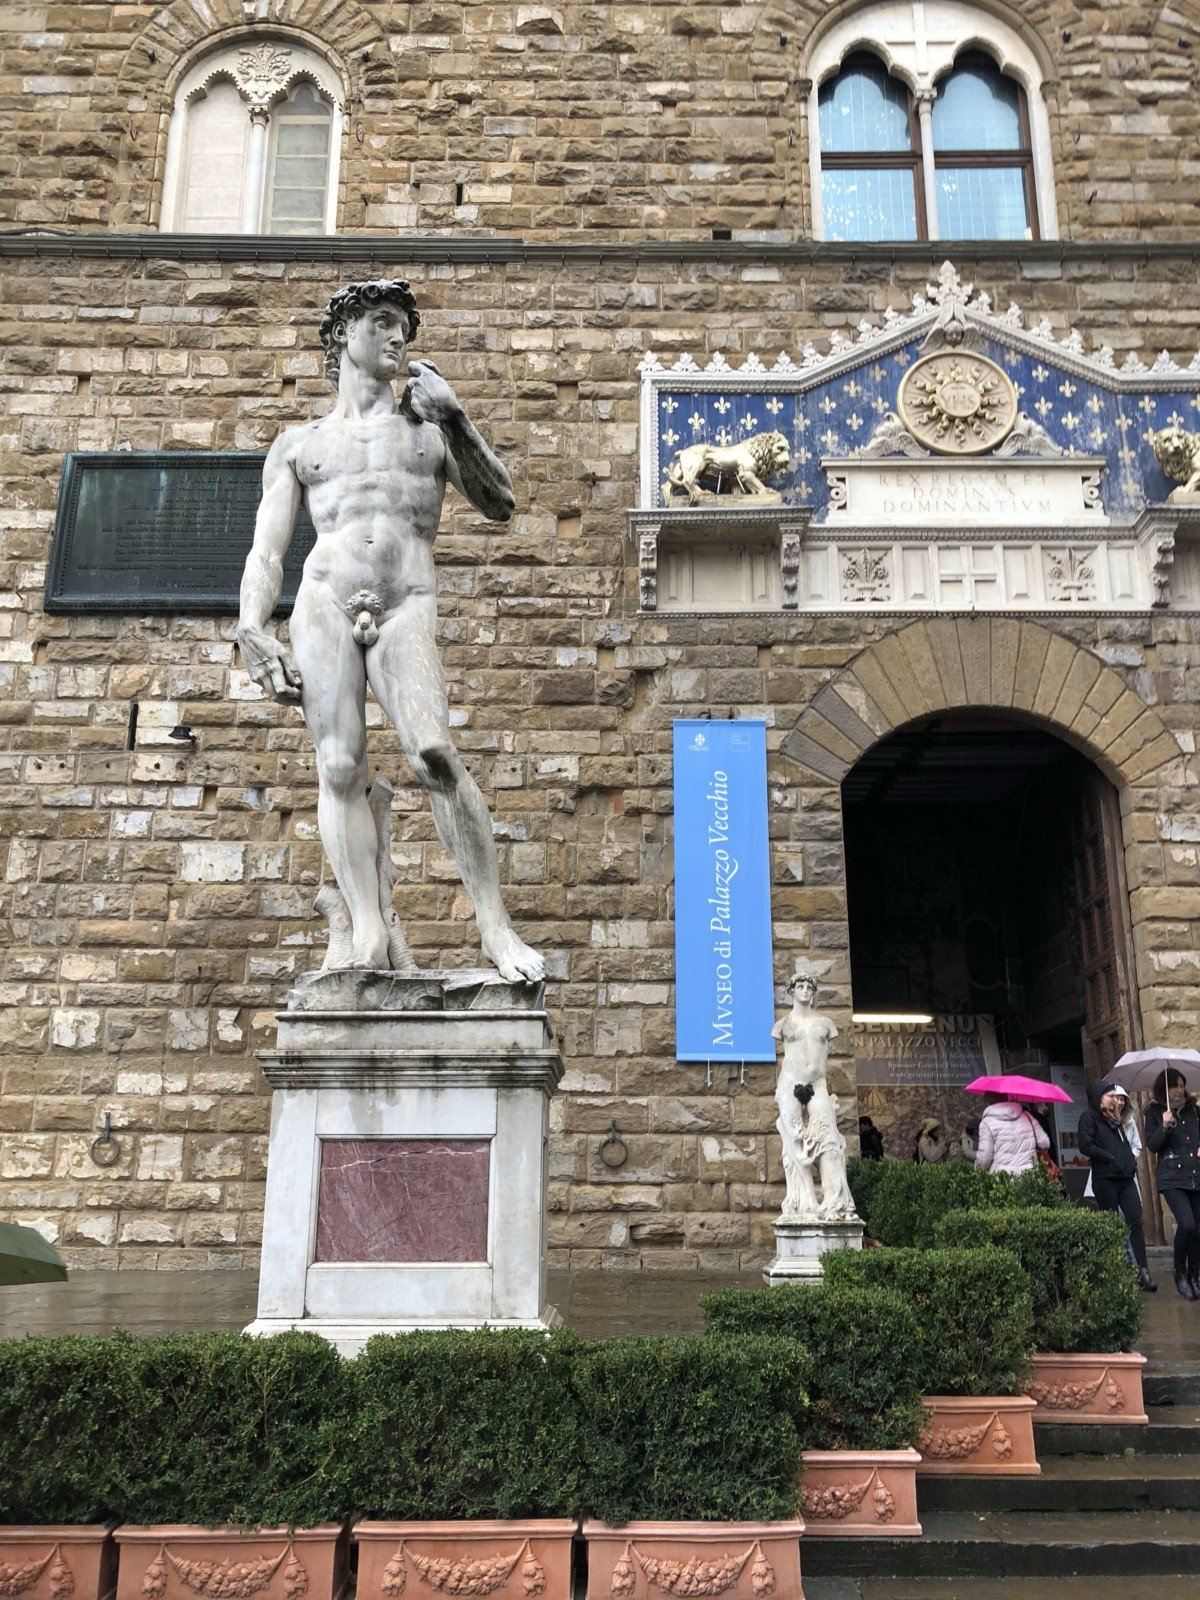 The Uffizi Gallery was remarkable Vincenzo pointed out the statues of some of Florence's most influential people that adorn its structure.